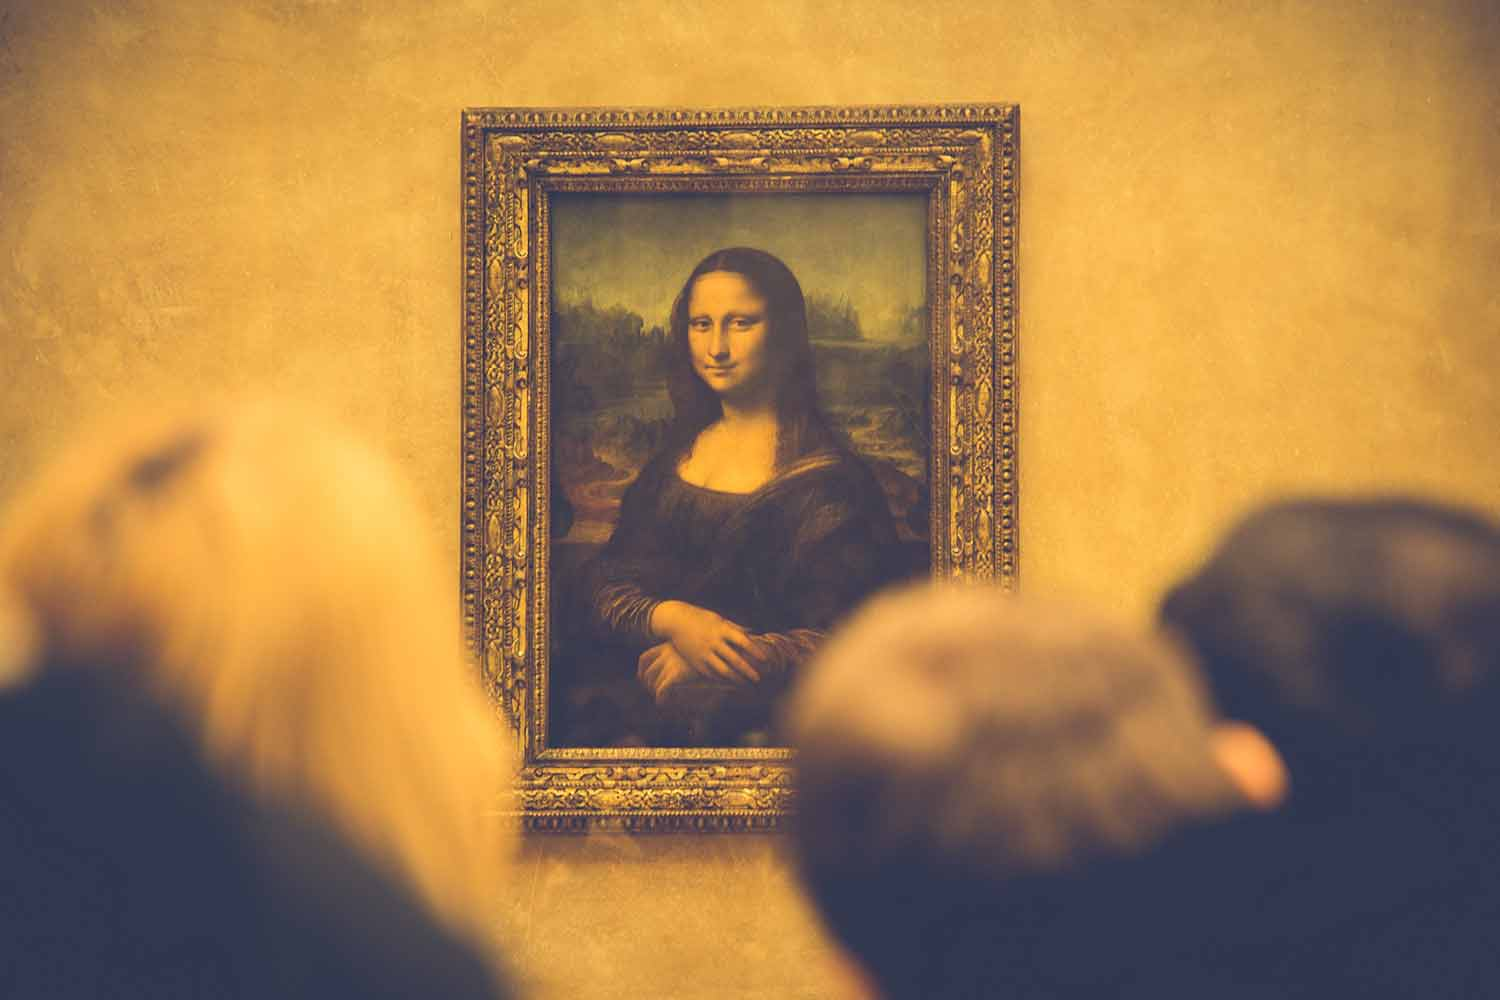 mona-lisa-in-art-gallery.jpg